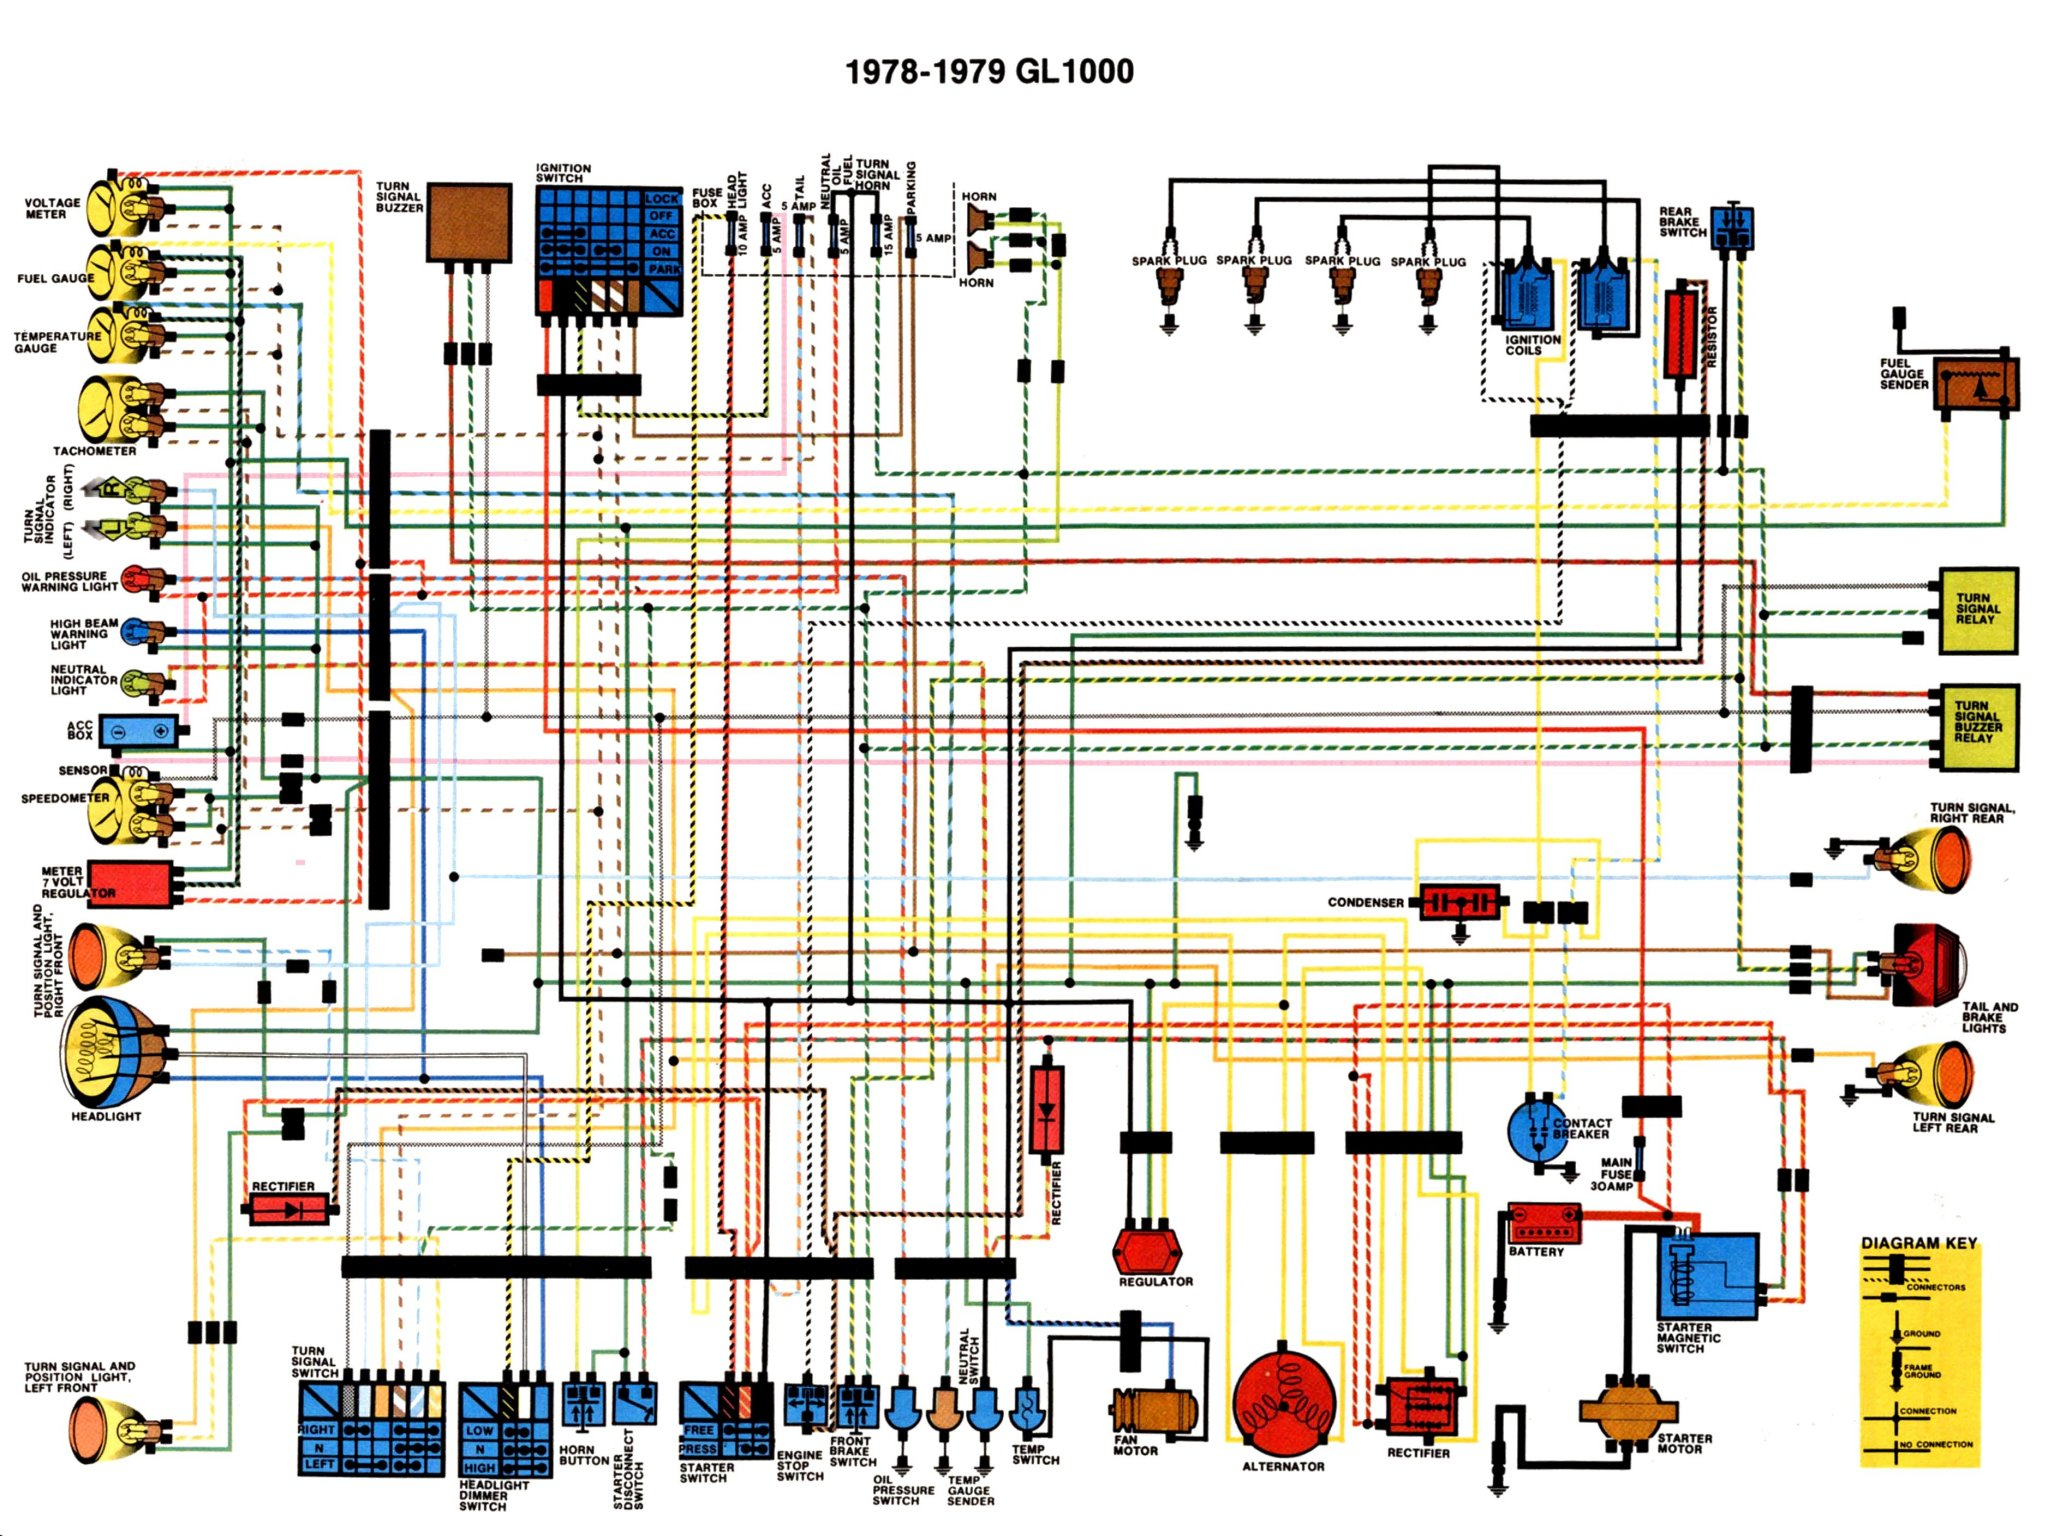 Honda Goldwing GL1000 1978 to 1979 Color Schematic honda gl1000 wiring diagram cb350f wiring diagram \u2022 free wiring 1978 honda cb125s wiring diagrams at suagrazia.org